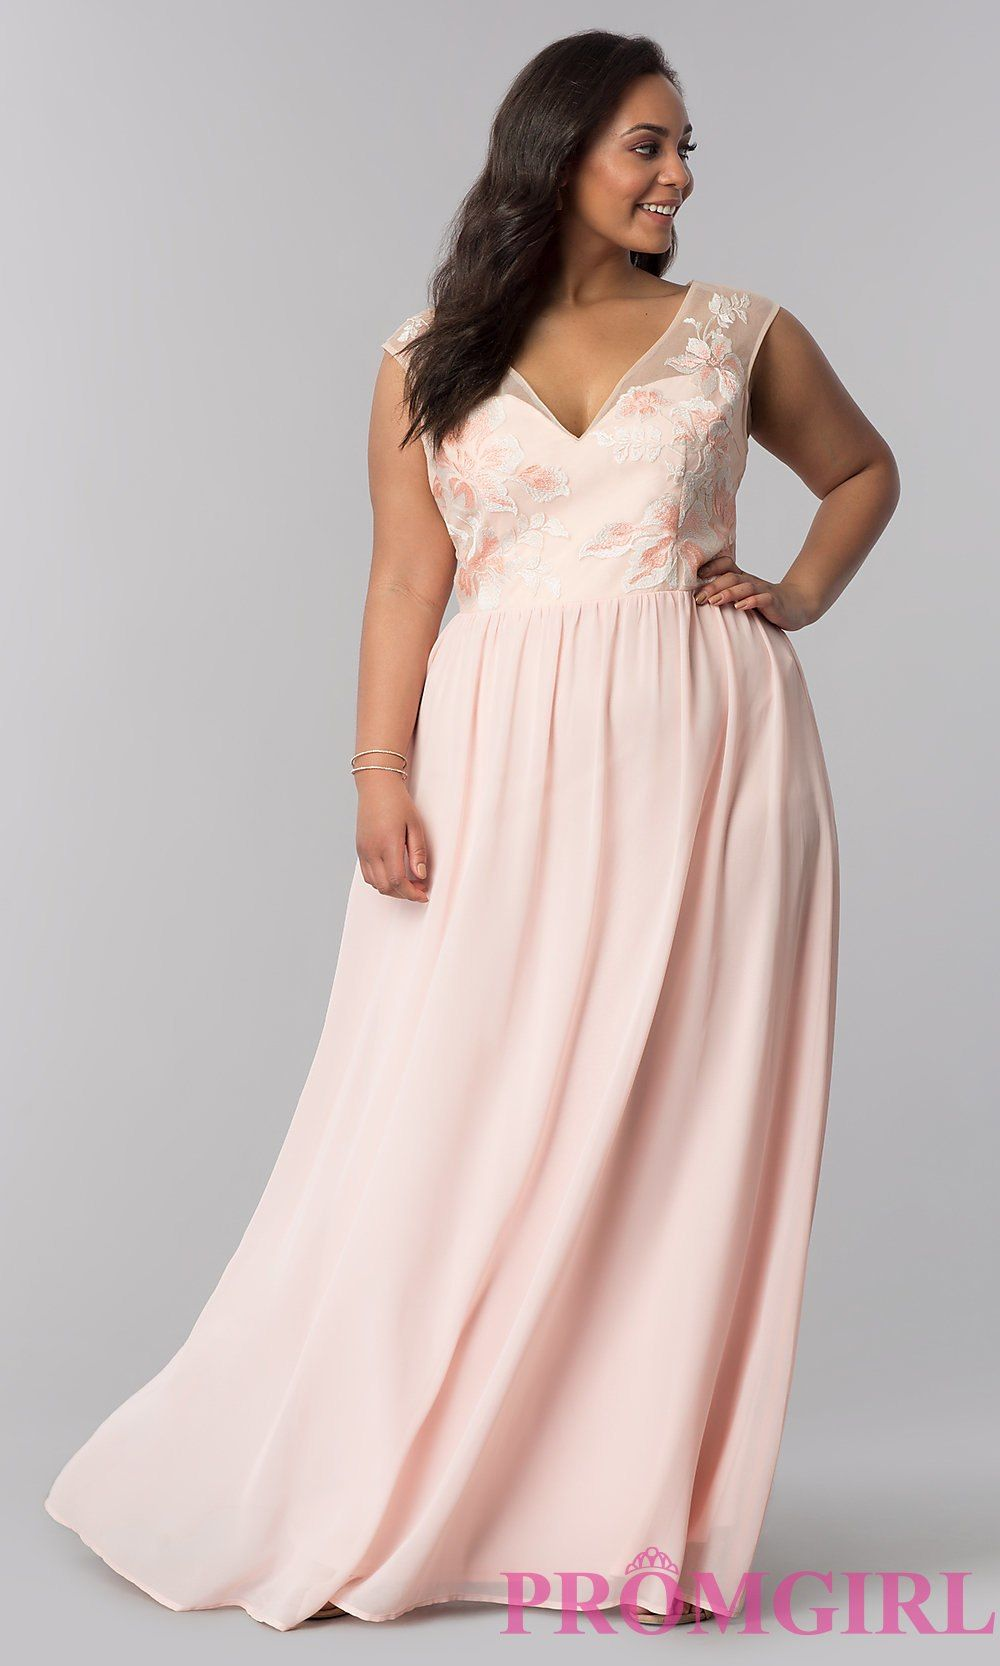 Vneck plussize prom dress in blush pink promgirl mother of the